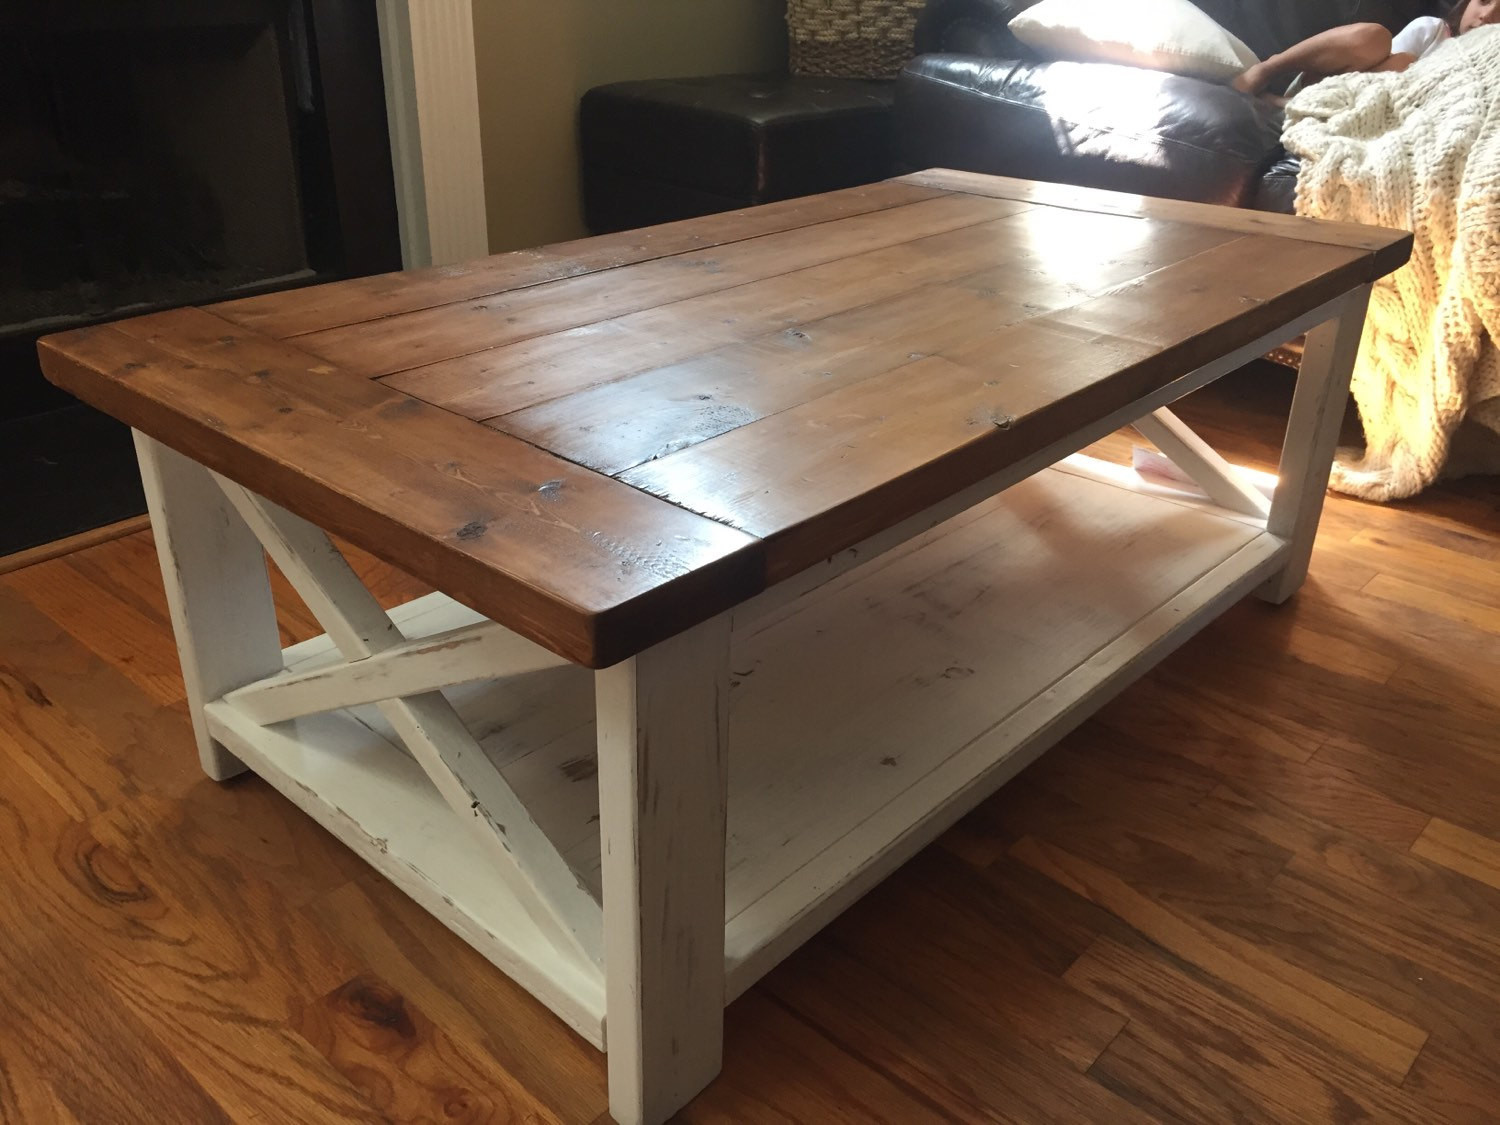 Best ideas about Farmhouse Coffee Table . Save or Pin Farmhouse Coffee Table Now.